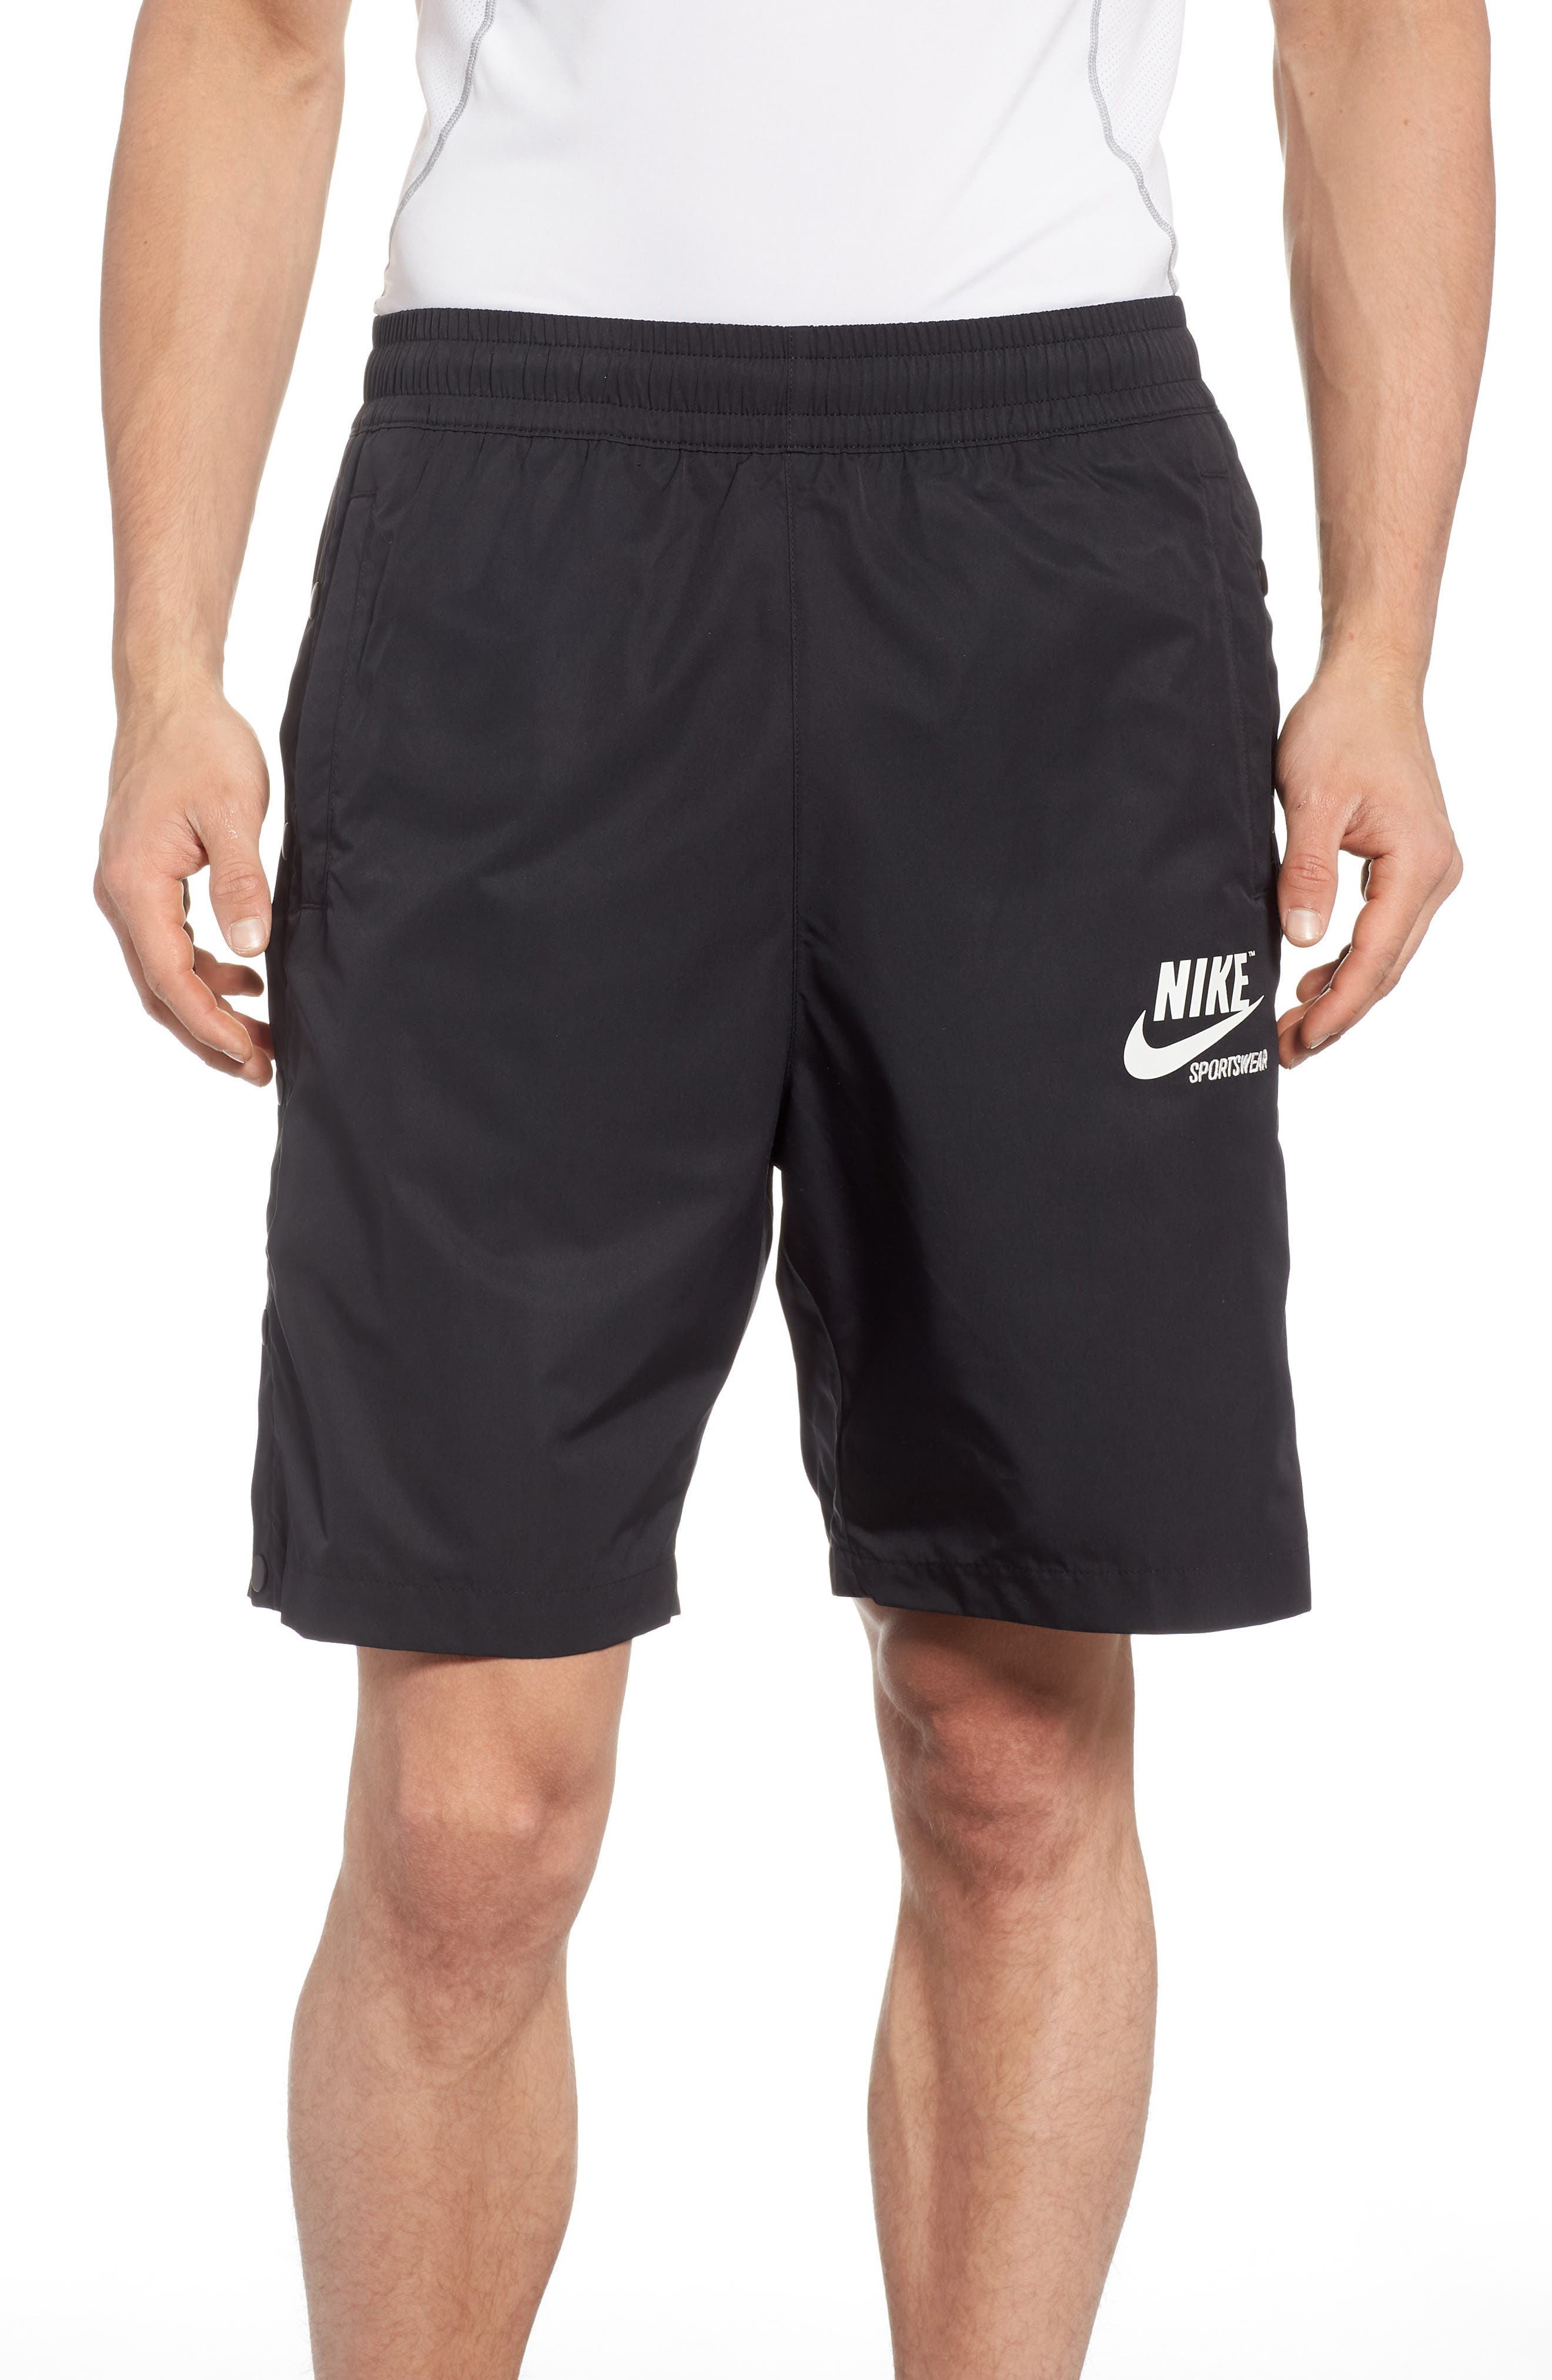 NSW Archive Shorts,                         Main,                         color, BLACK/ SAIL